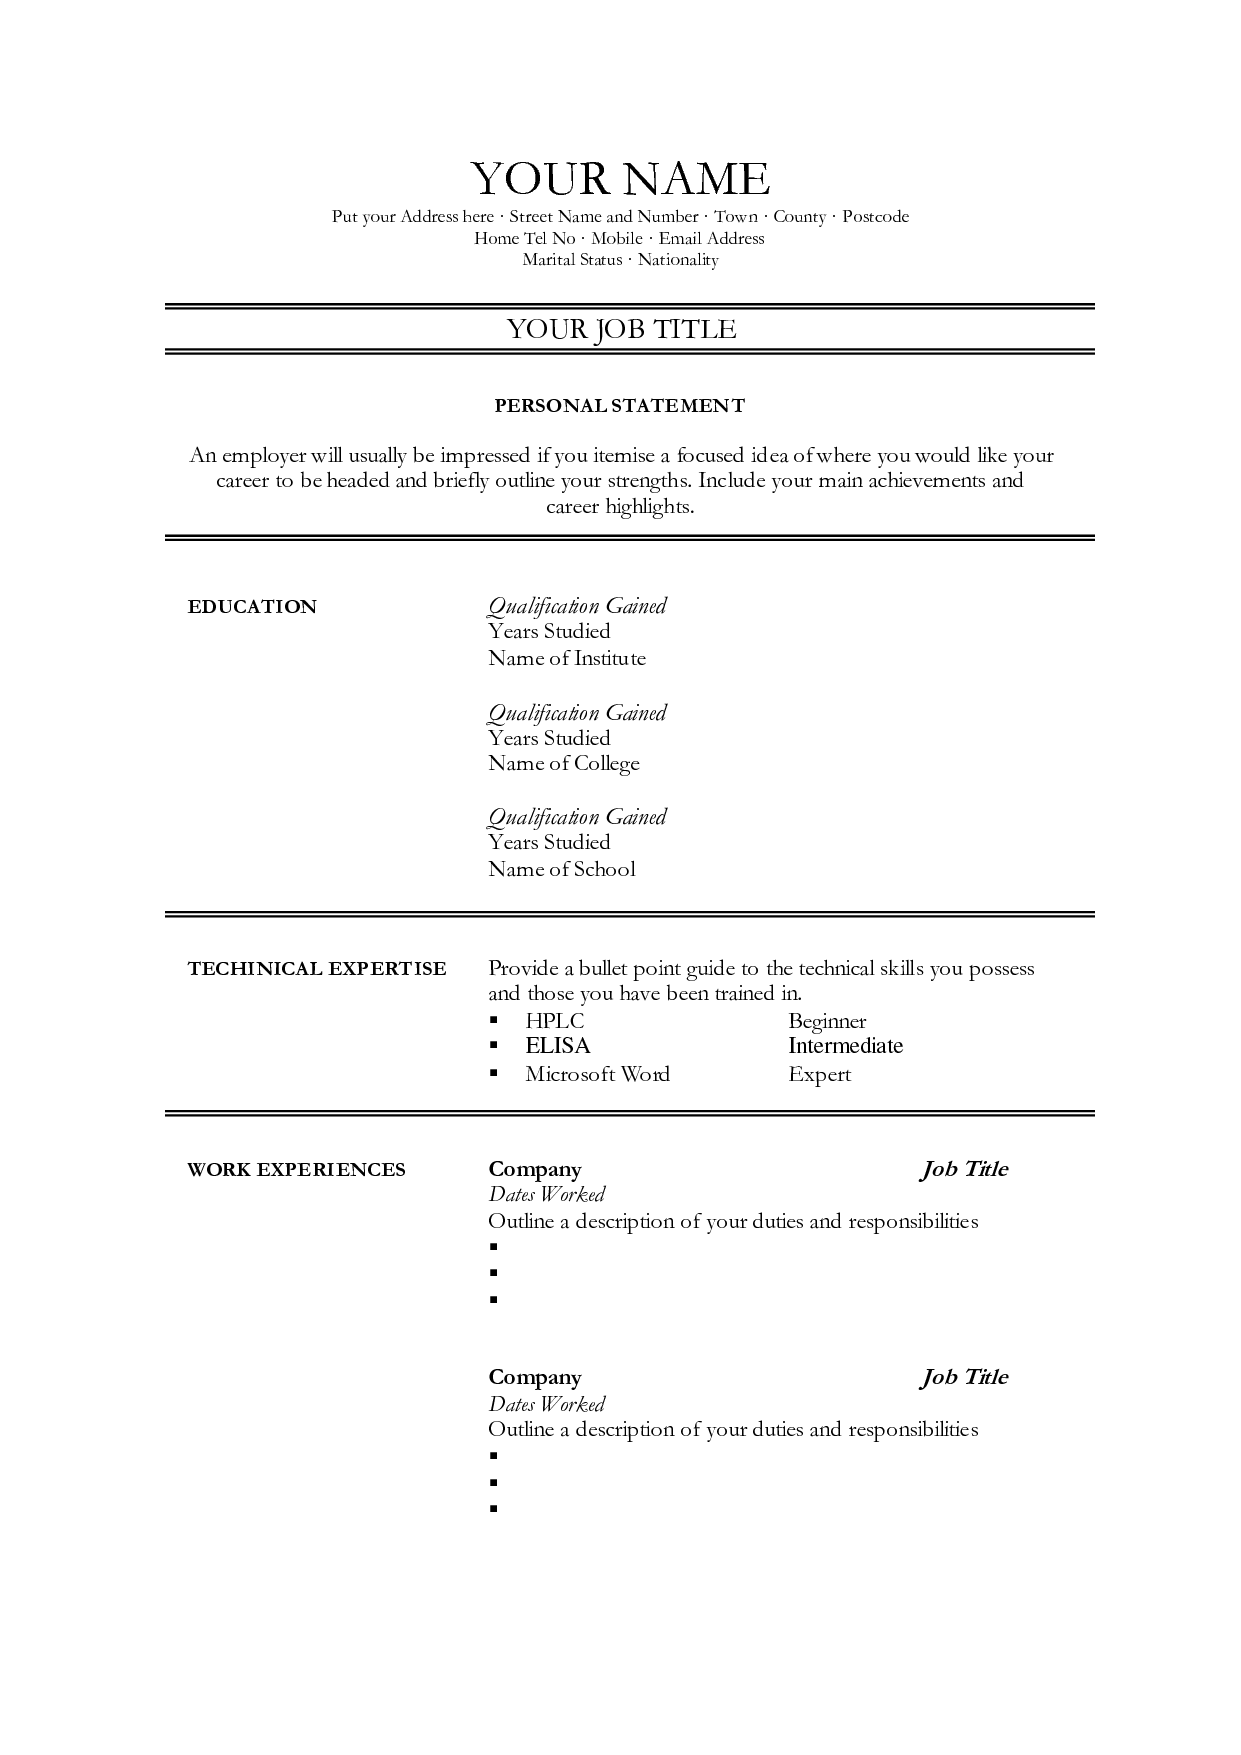 Pin By Resumejob On Resume Job Resume Sample Resume Job Resume